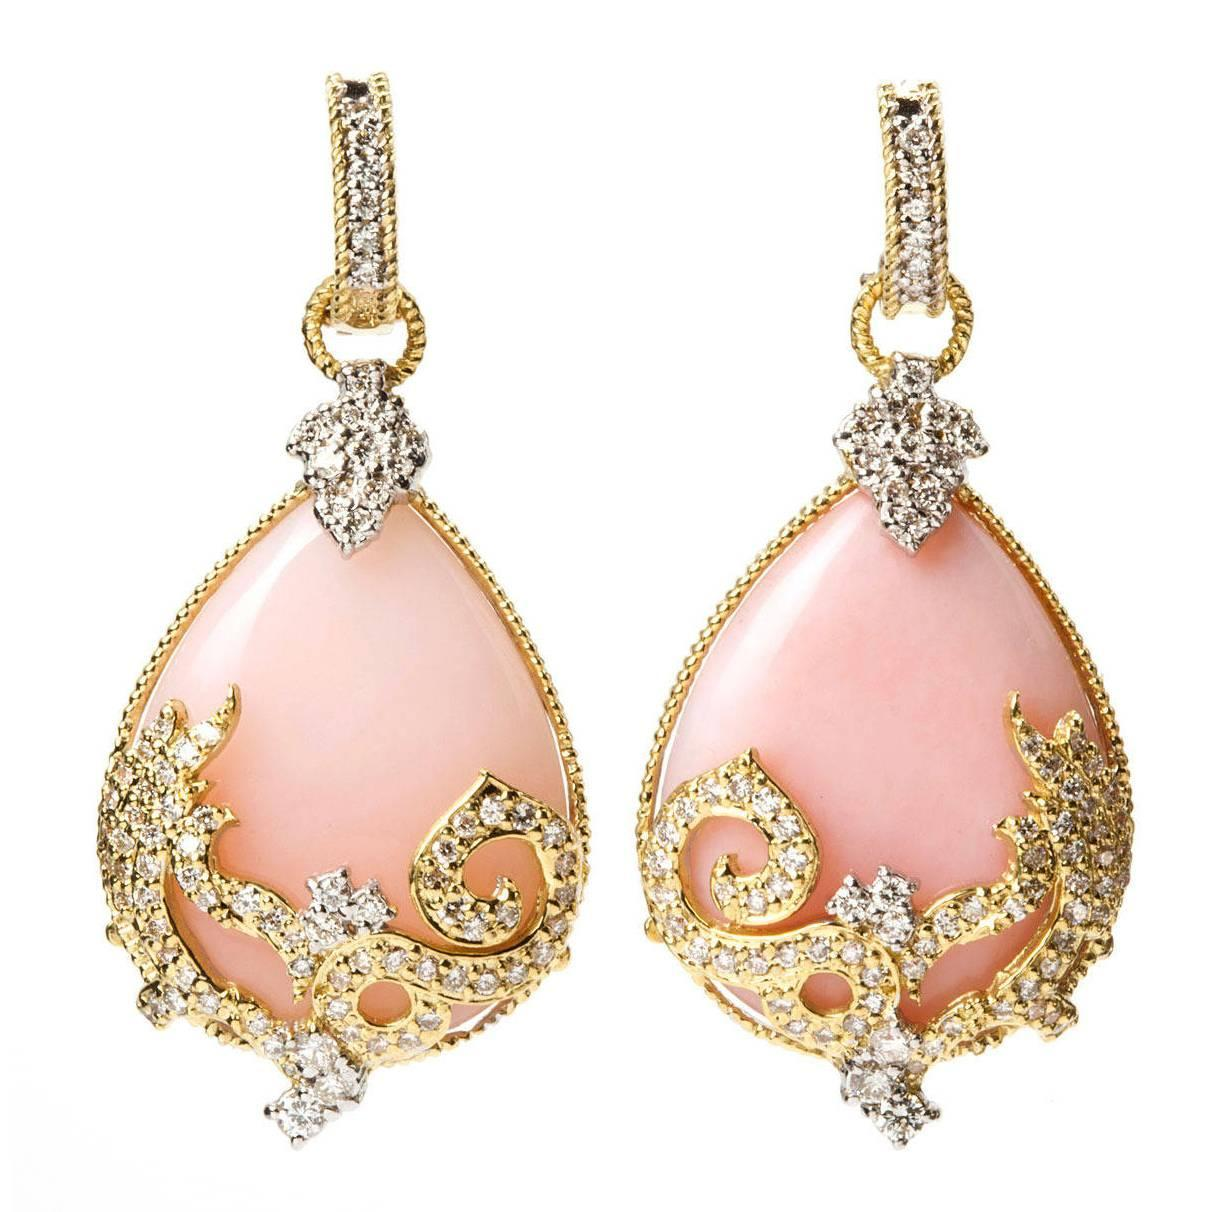 Preferred Stambolian Pink Opal Diamond Gold Drop Earrings For Sale at 1stdibs UM62